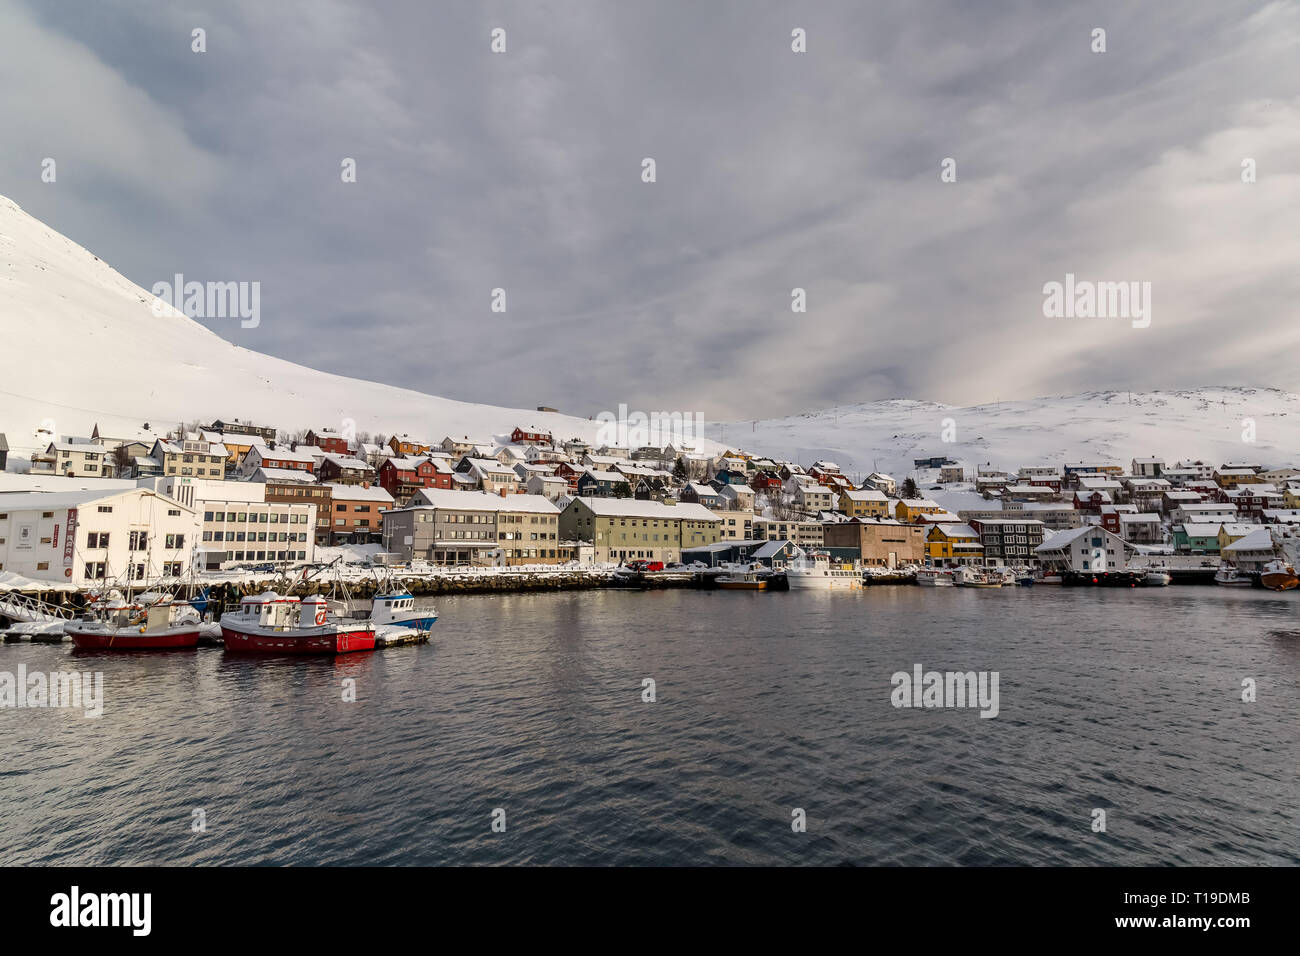 The port town of Honningsvag in Norway. - Stock Image